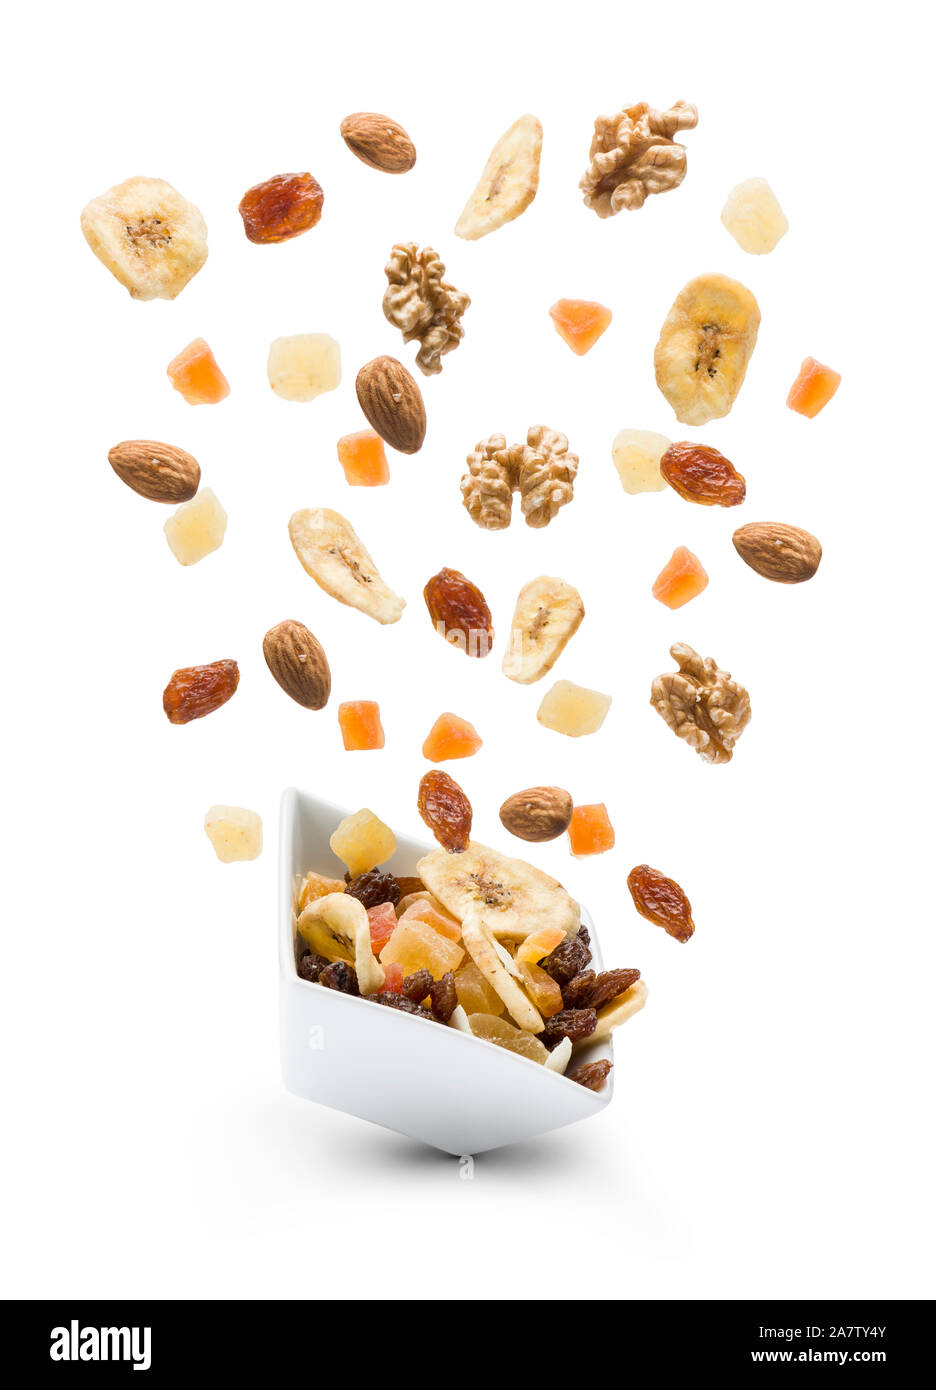 Dried fruits jumping out white bowl on white background Stock Photo